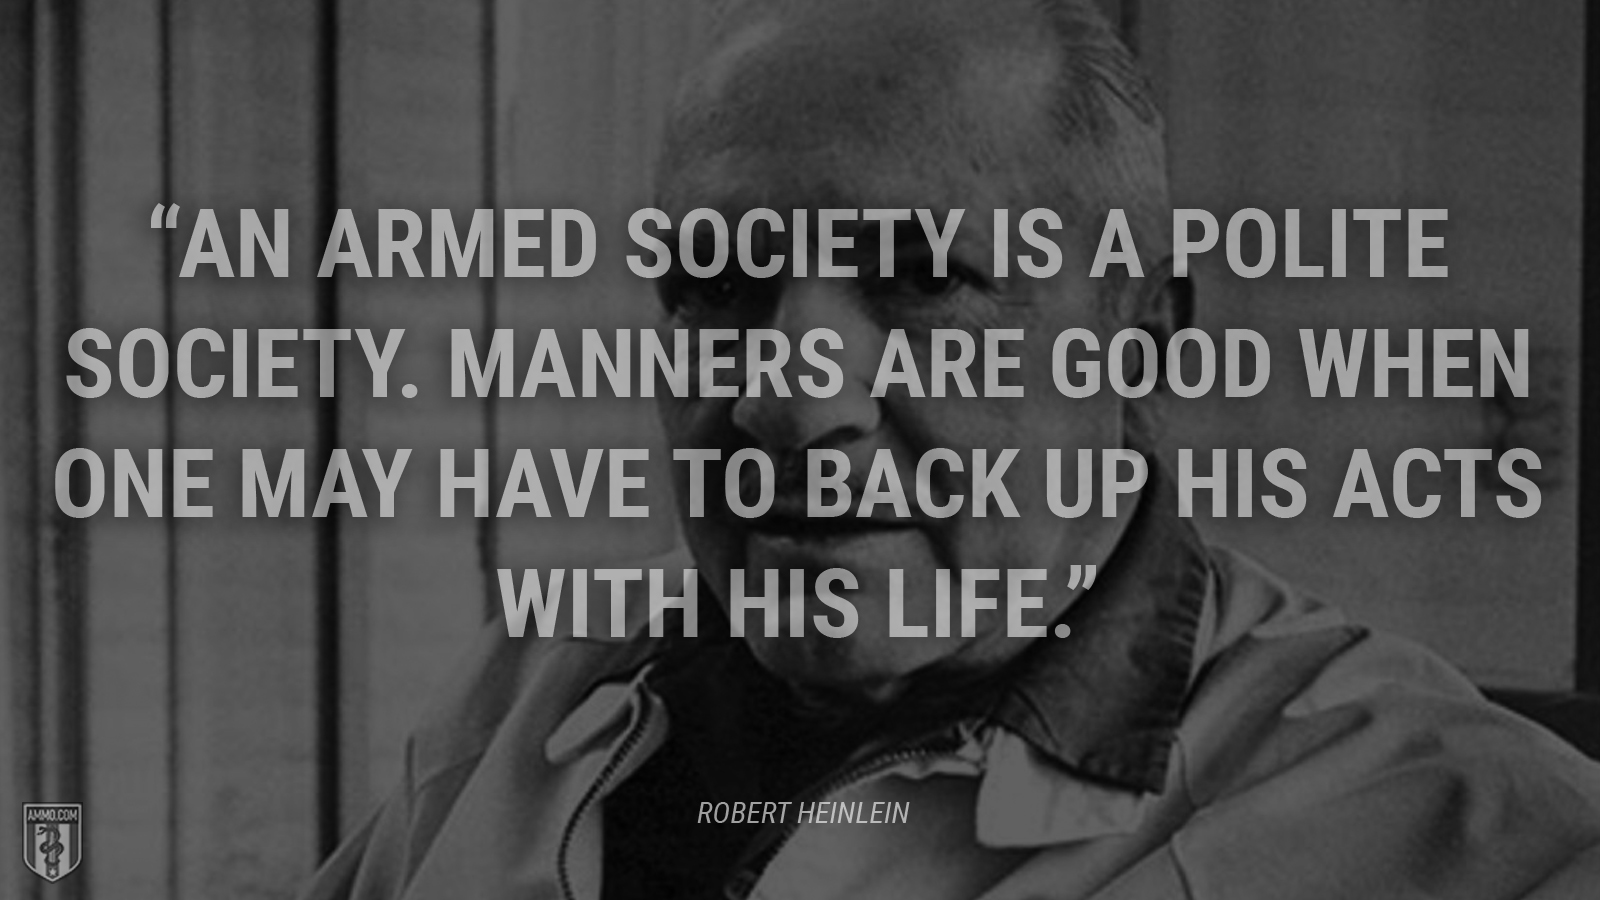 """An armed society is a polite society. Manners are good when one may have to back up his acts with his life."" - Robert A. Heinlein"